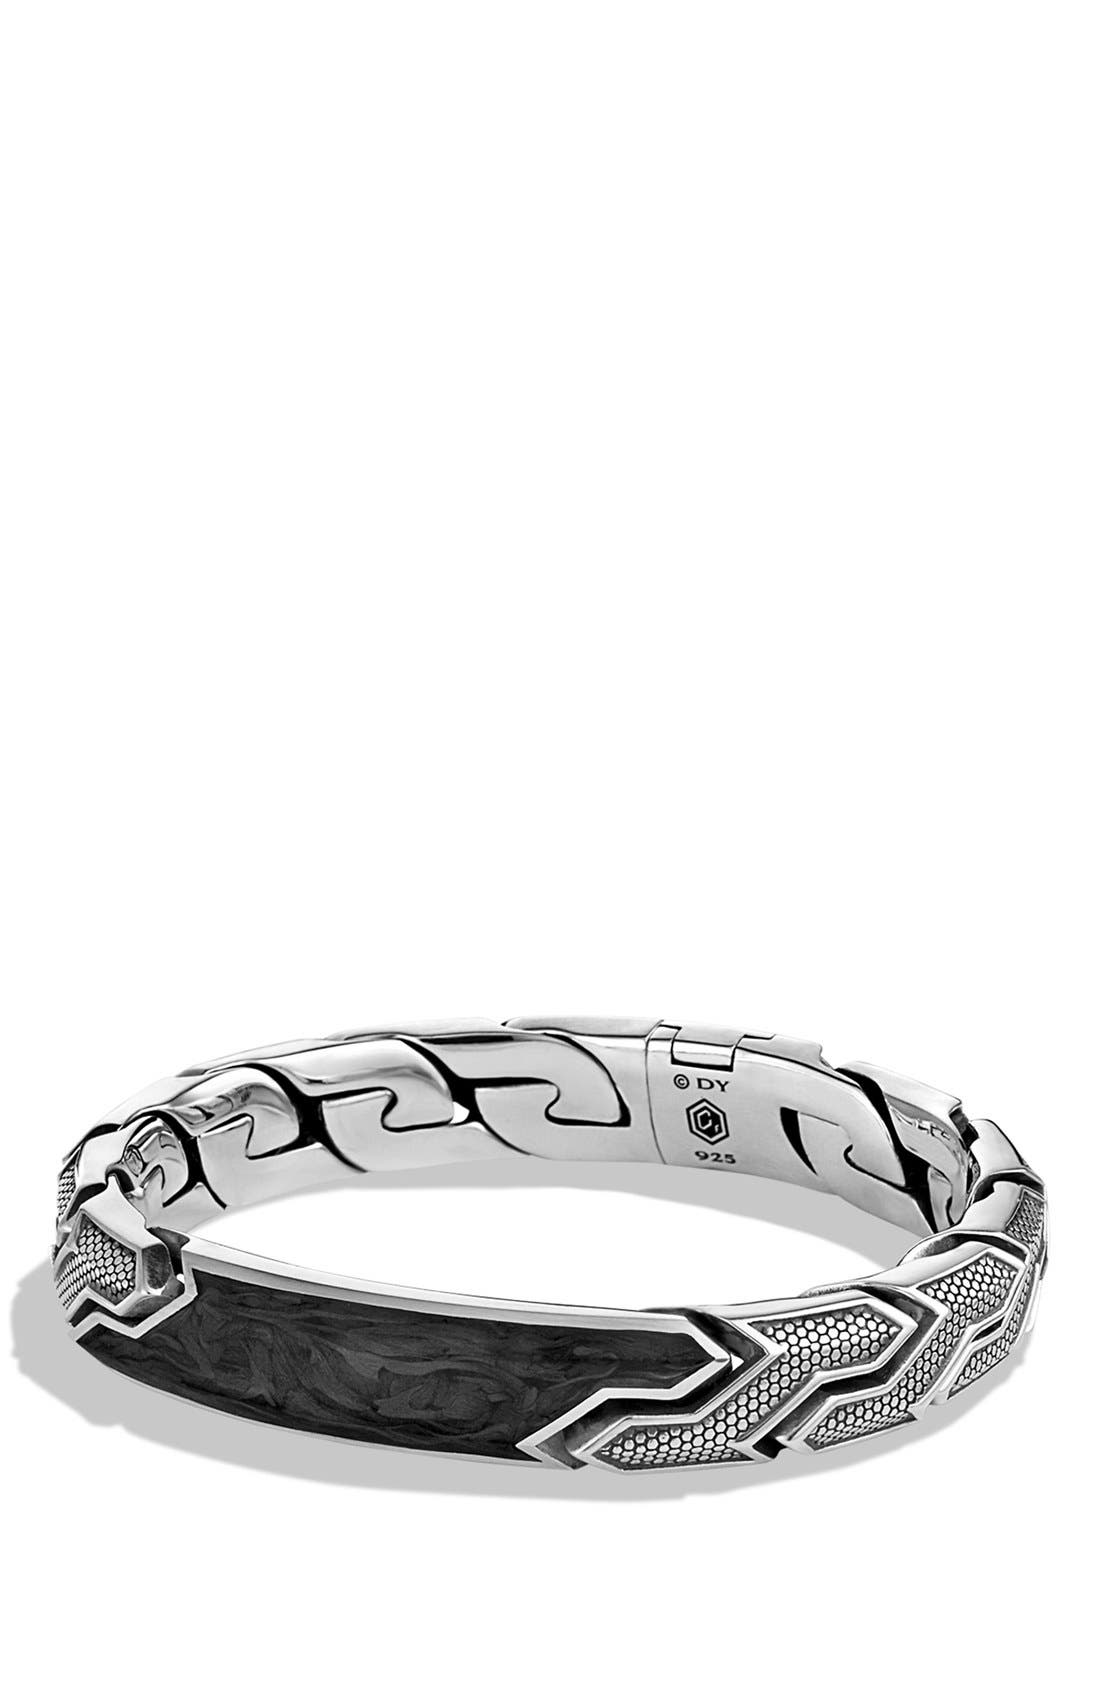 DAVID YURMAN,                             Forged Carbon ID Bracelet,                             Main thumbnail 1, color,                             FORGED CARBON